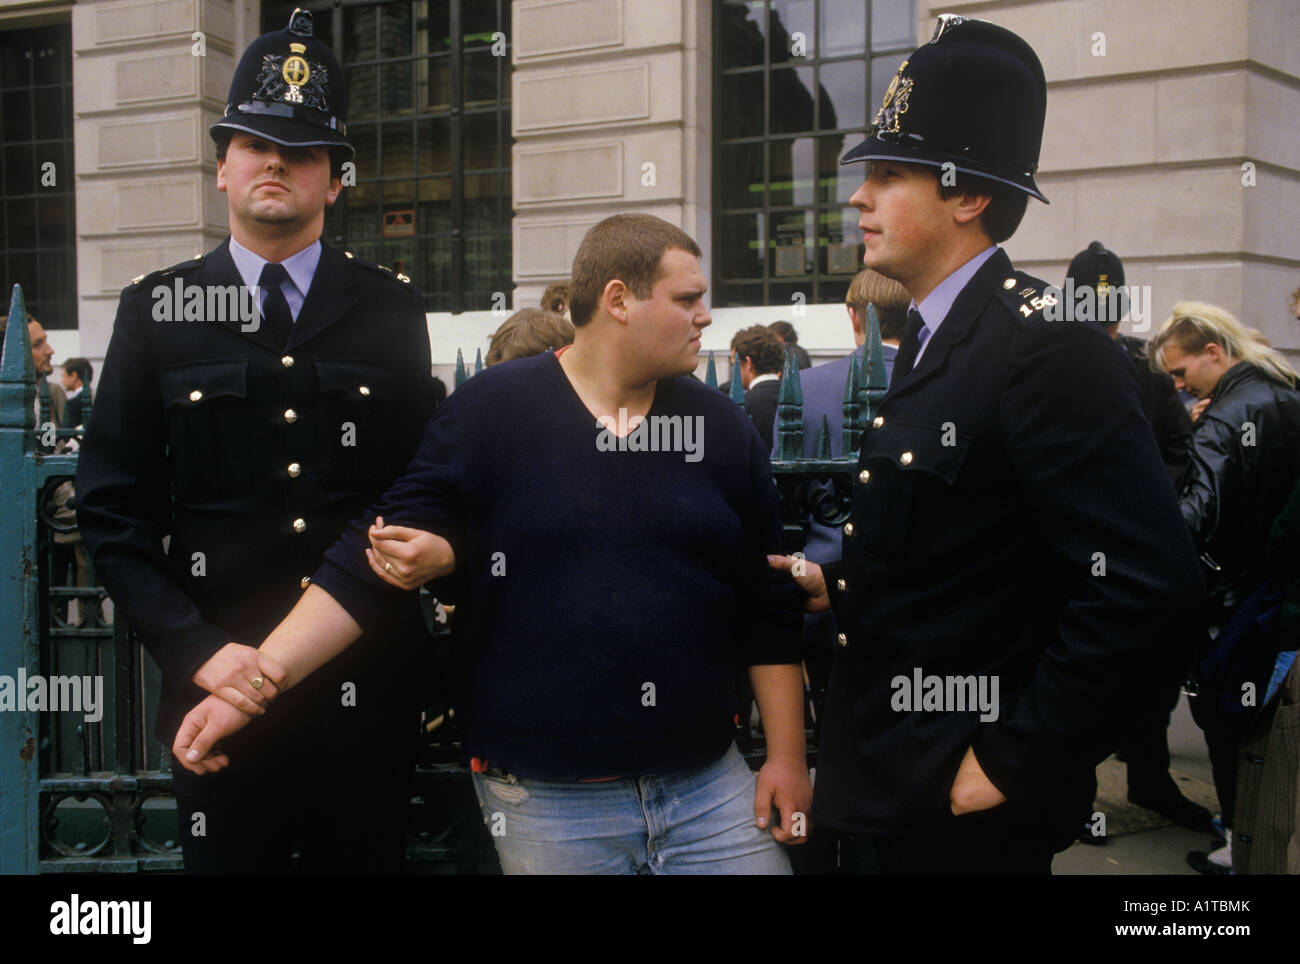 Stop the City Demo Demonstration against capitalism City of London England 1984 - Stock Image